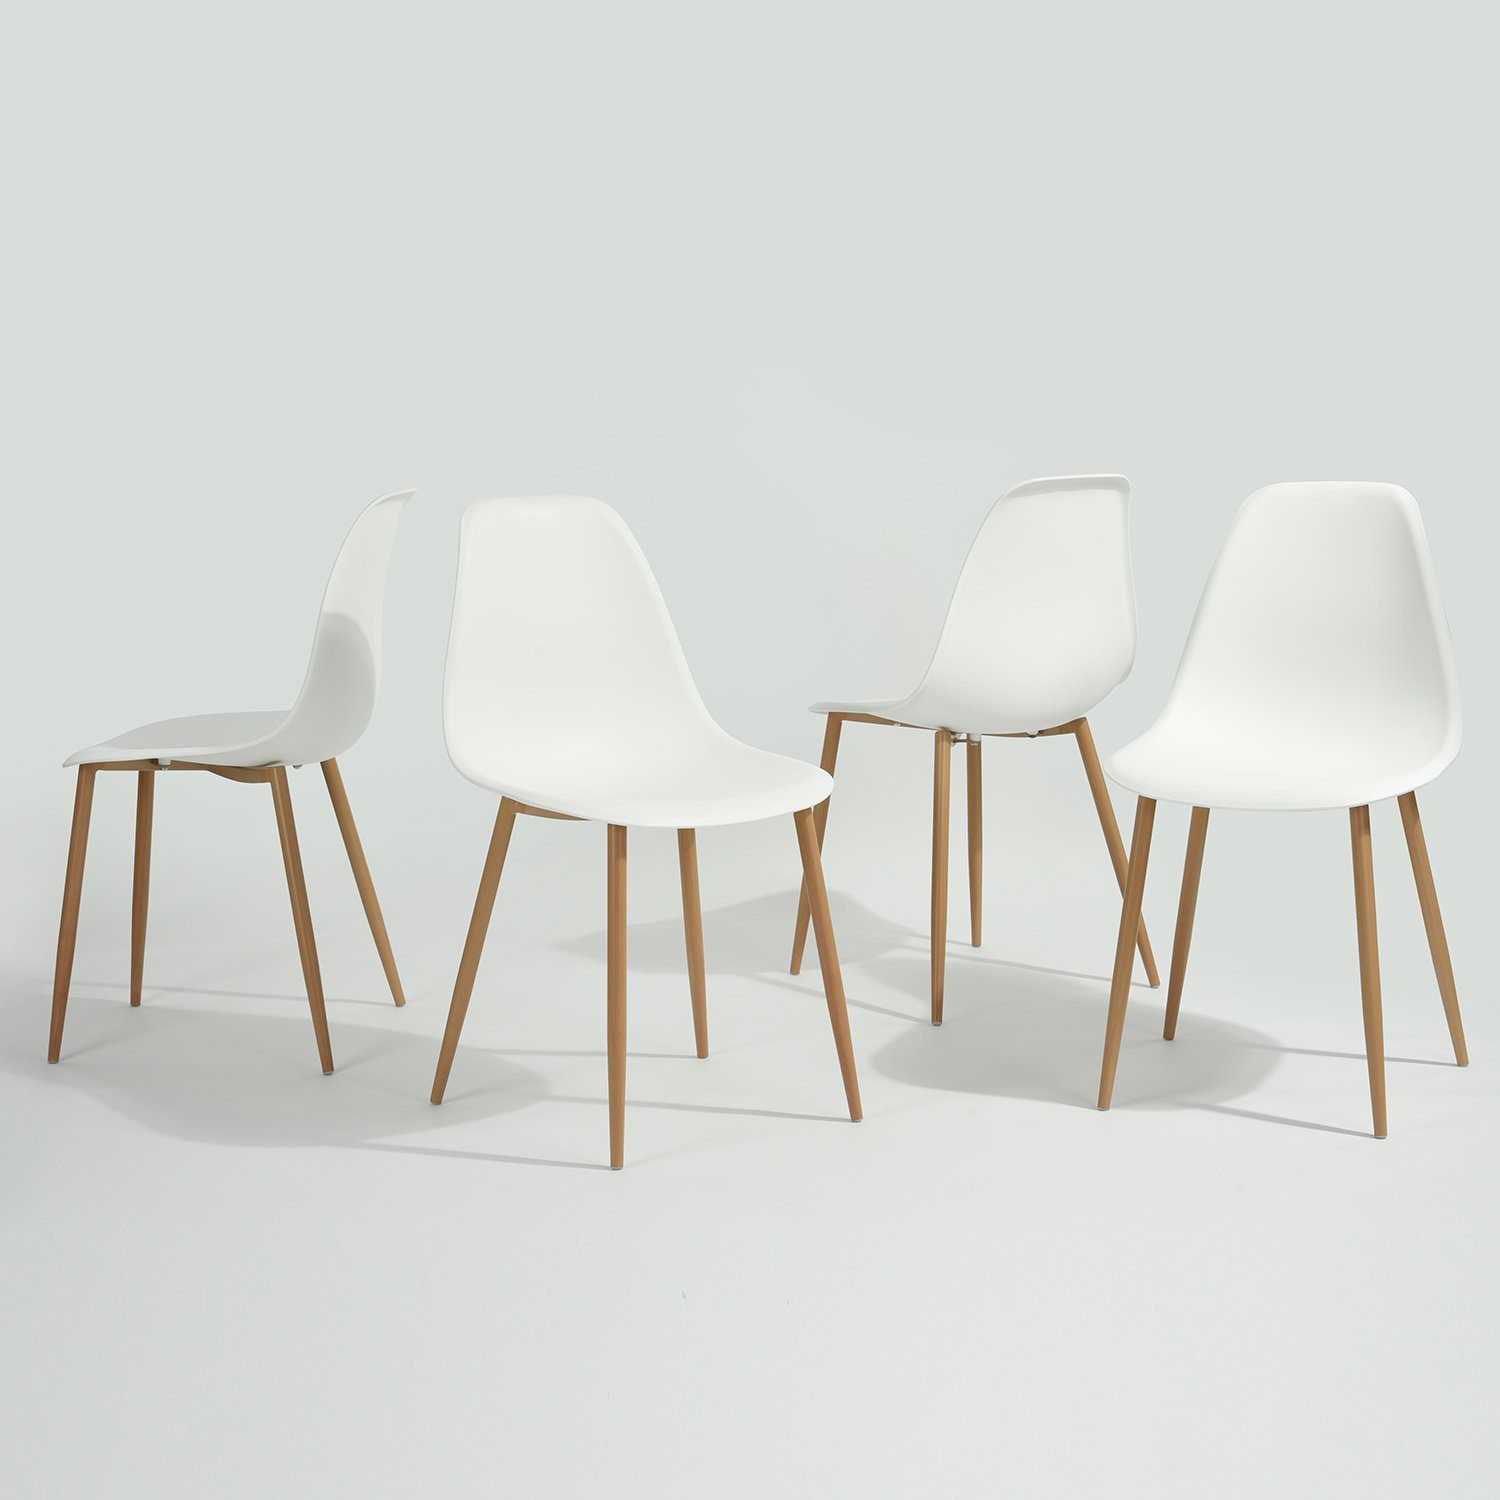 GreenForest Eames Dining Chair, Metal Wood Legs Plastic Seat and Back for Dining Room Chairs, Sets of 4 White